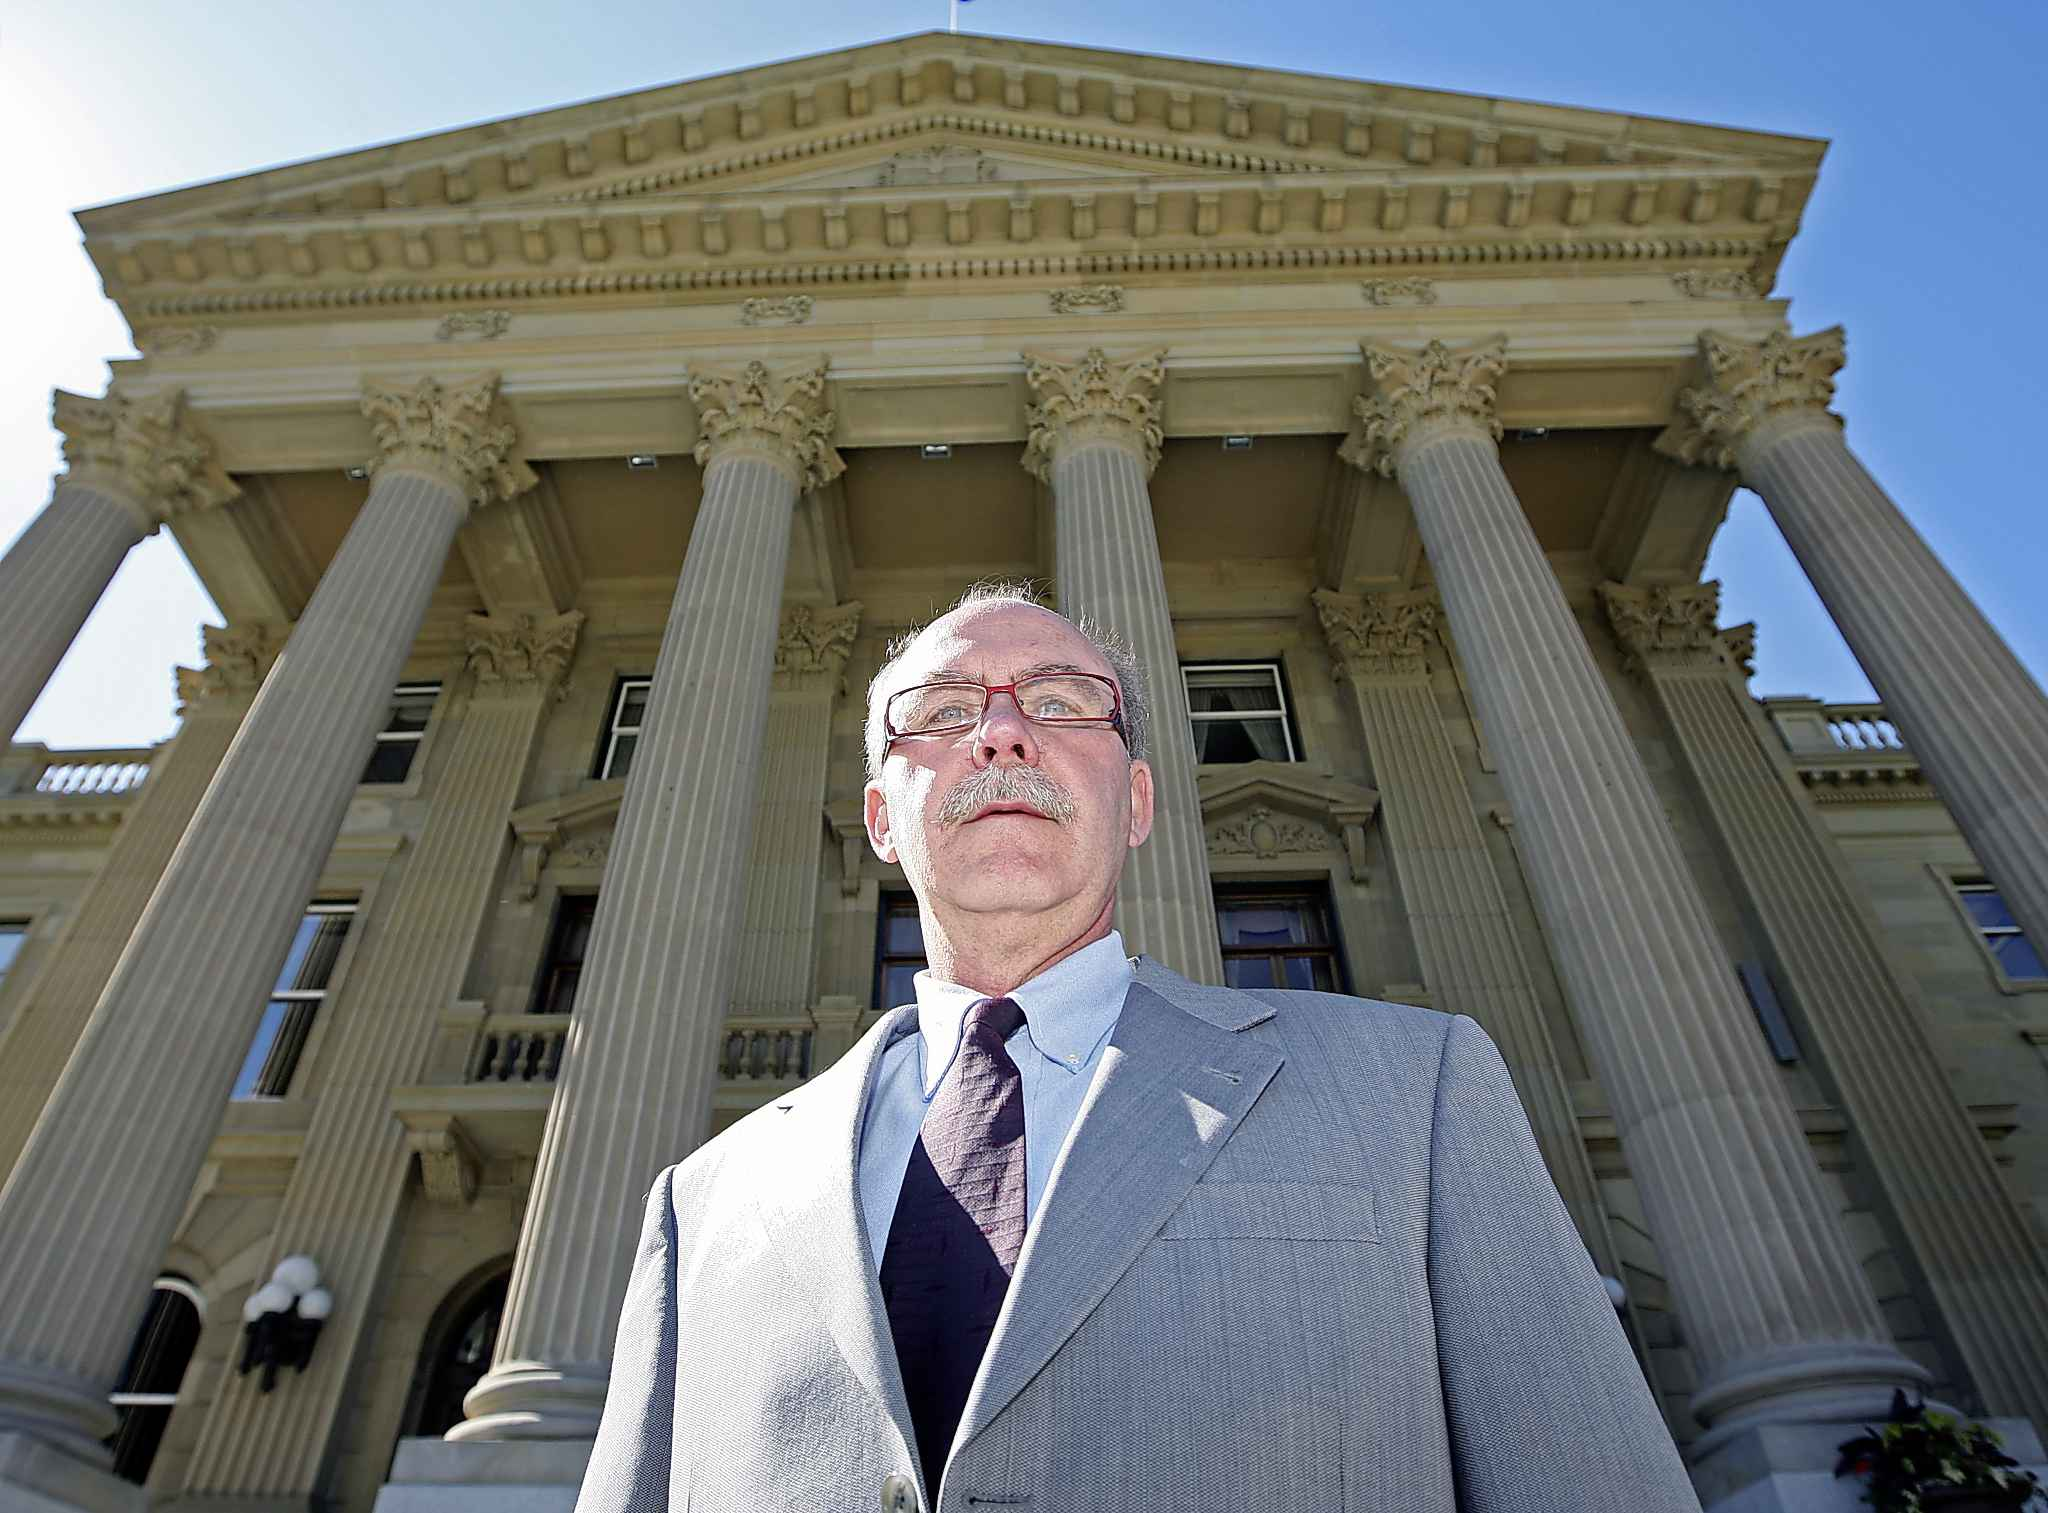 Lorne Gibson's office has levied fines totalling in the hundreds of thousands of dollars against the United Conservative Party. (John Lucas / Edmonton Journal files)